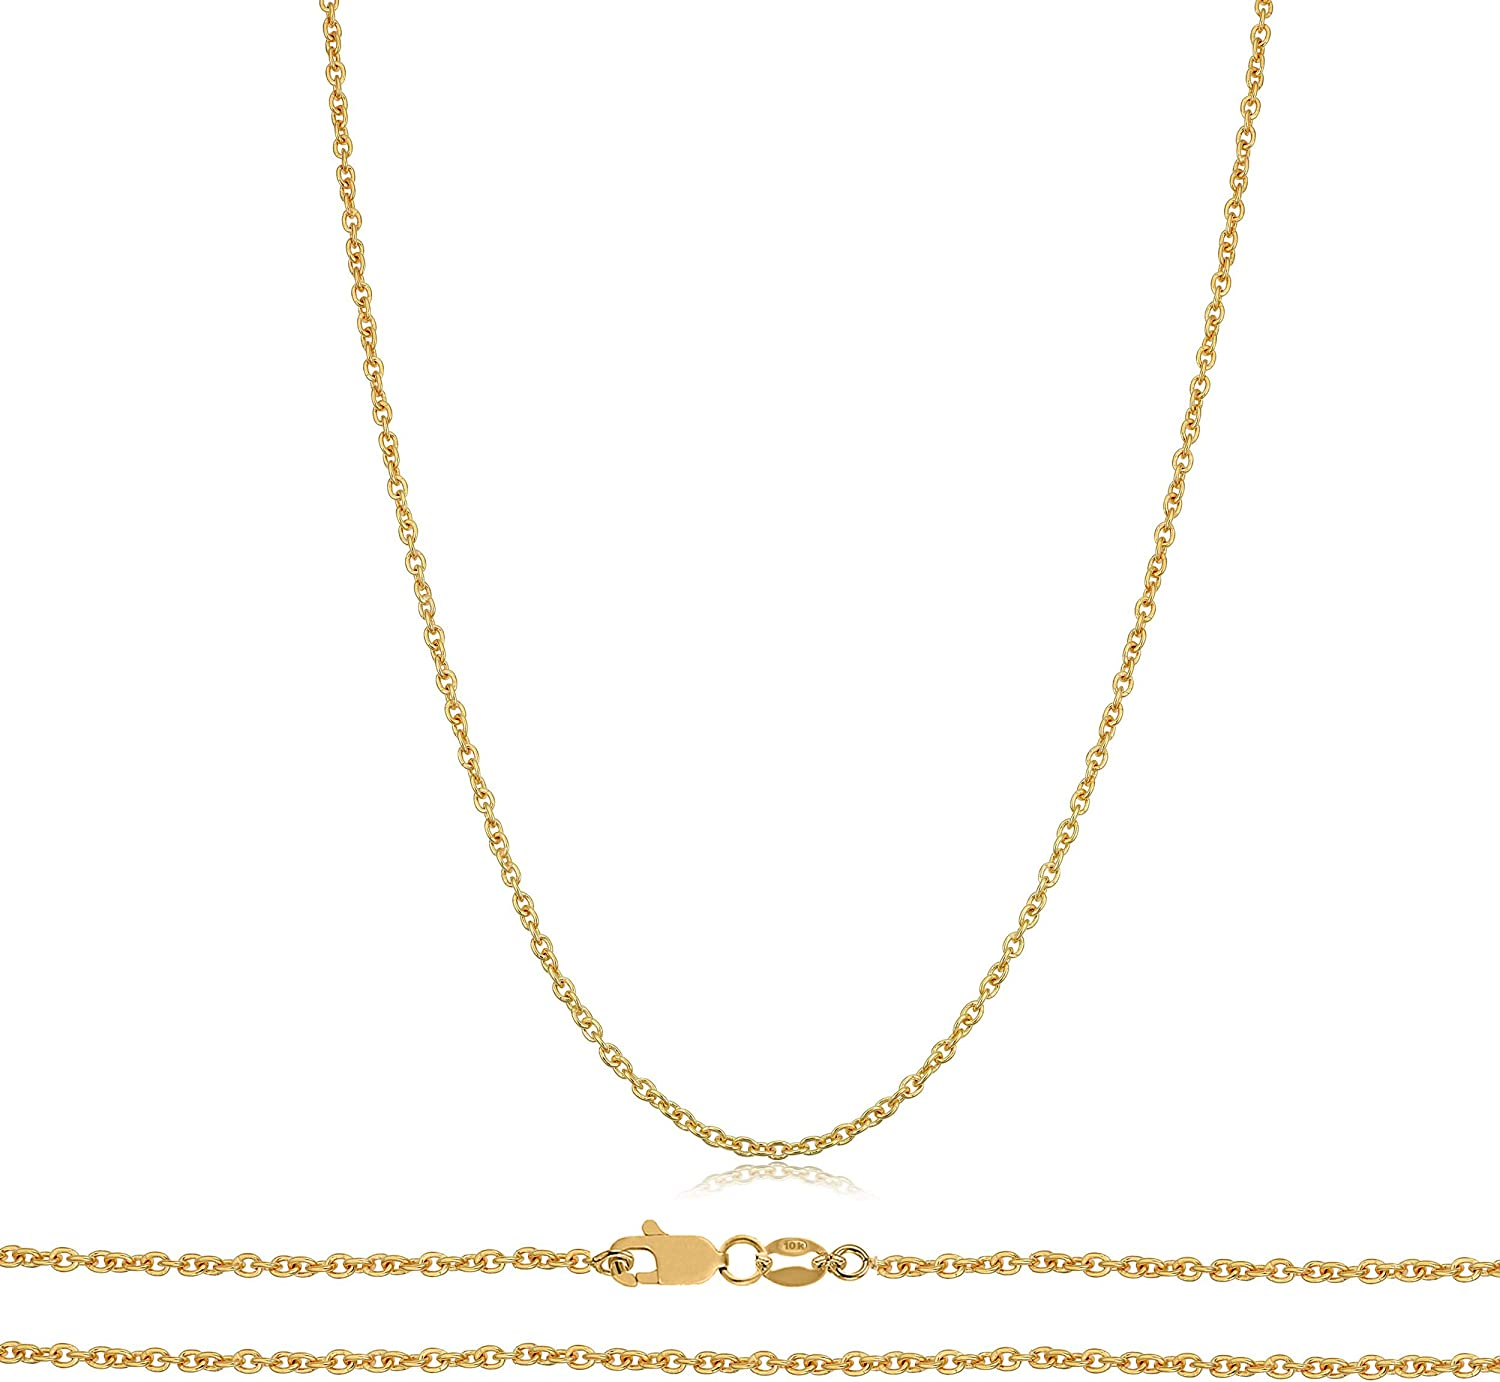 Orostar 10k Gold 1MM Round Cable Chain for Men & Women   Strong Round Cable Chain Necklace in Yellow Gold   Size 16-22 inches